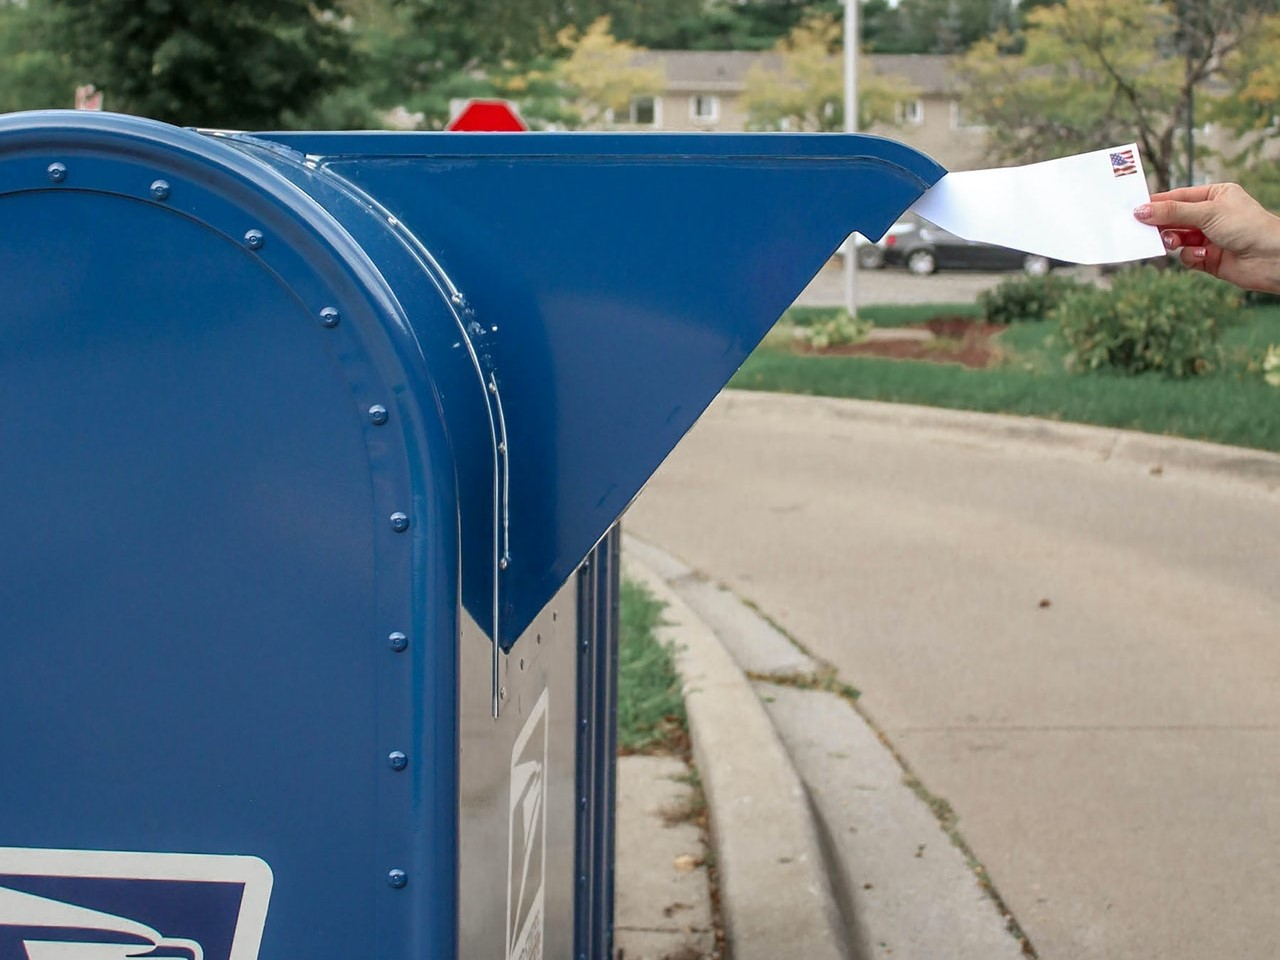 A man putting a letter in a USPS mailbox.